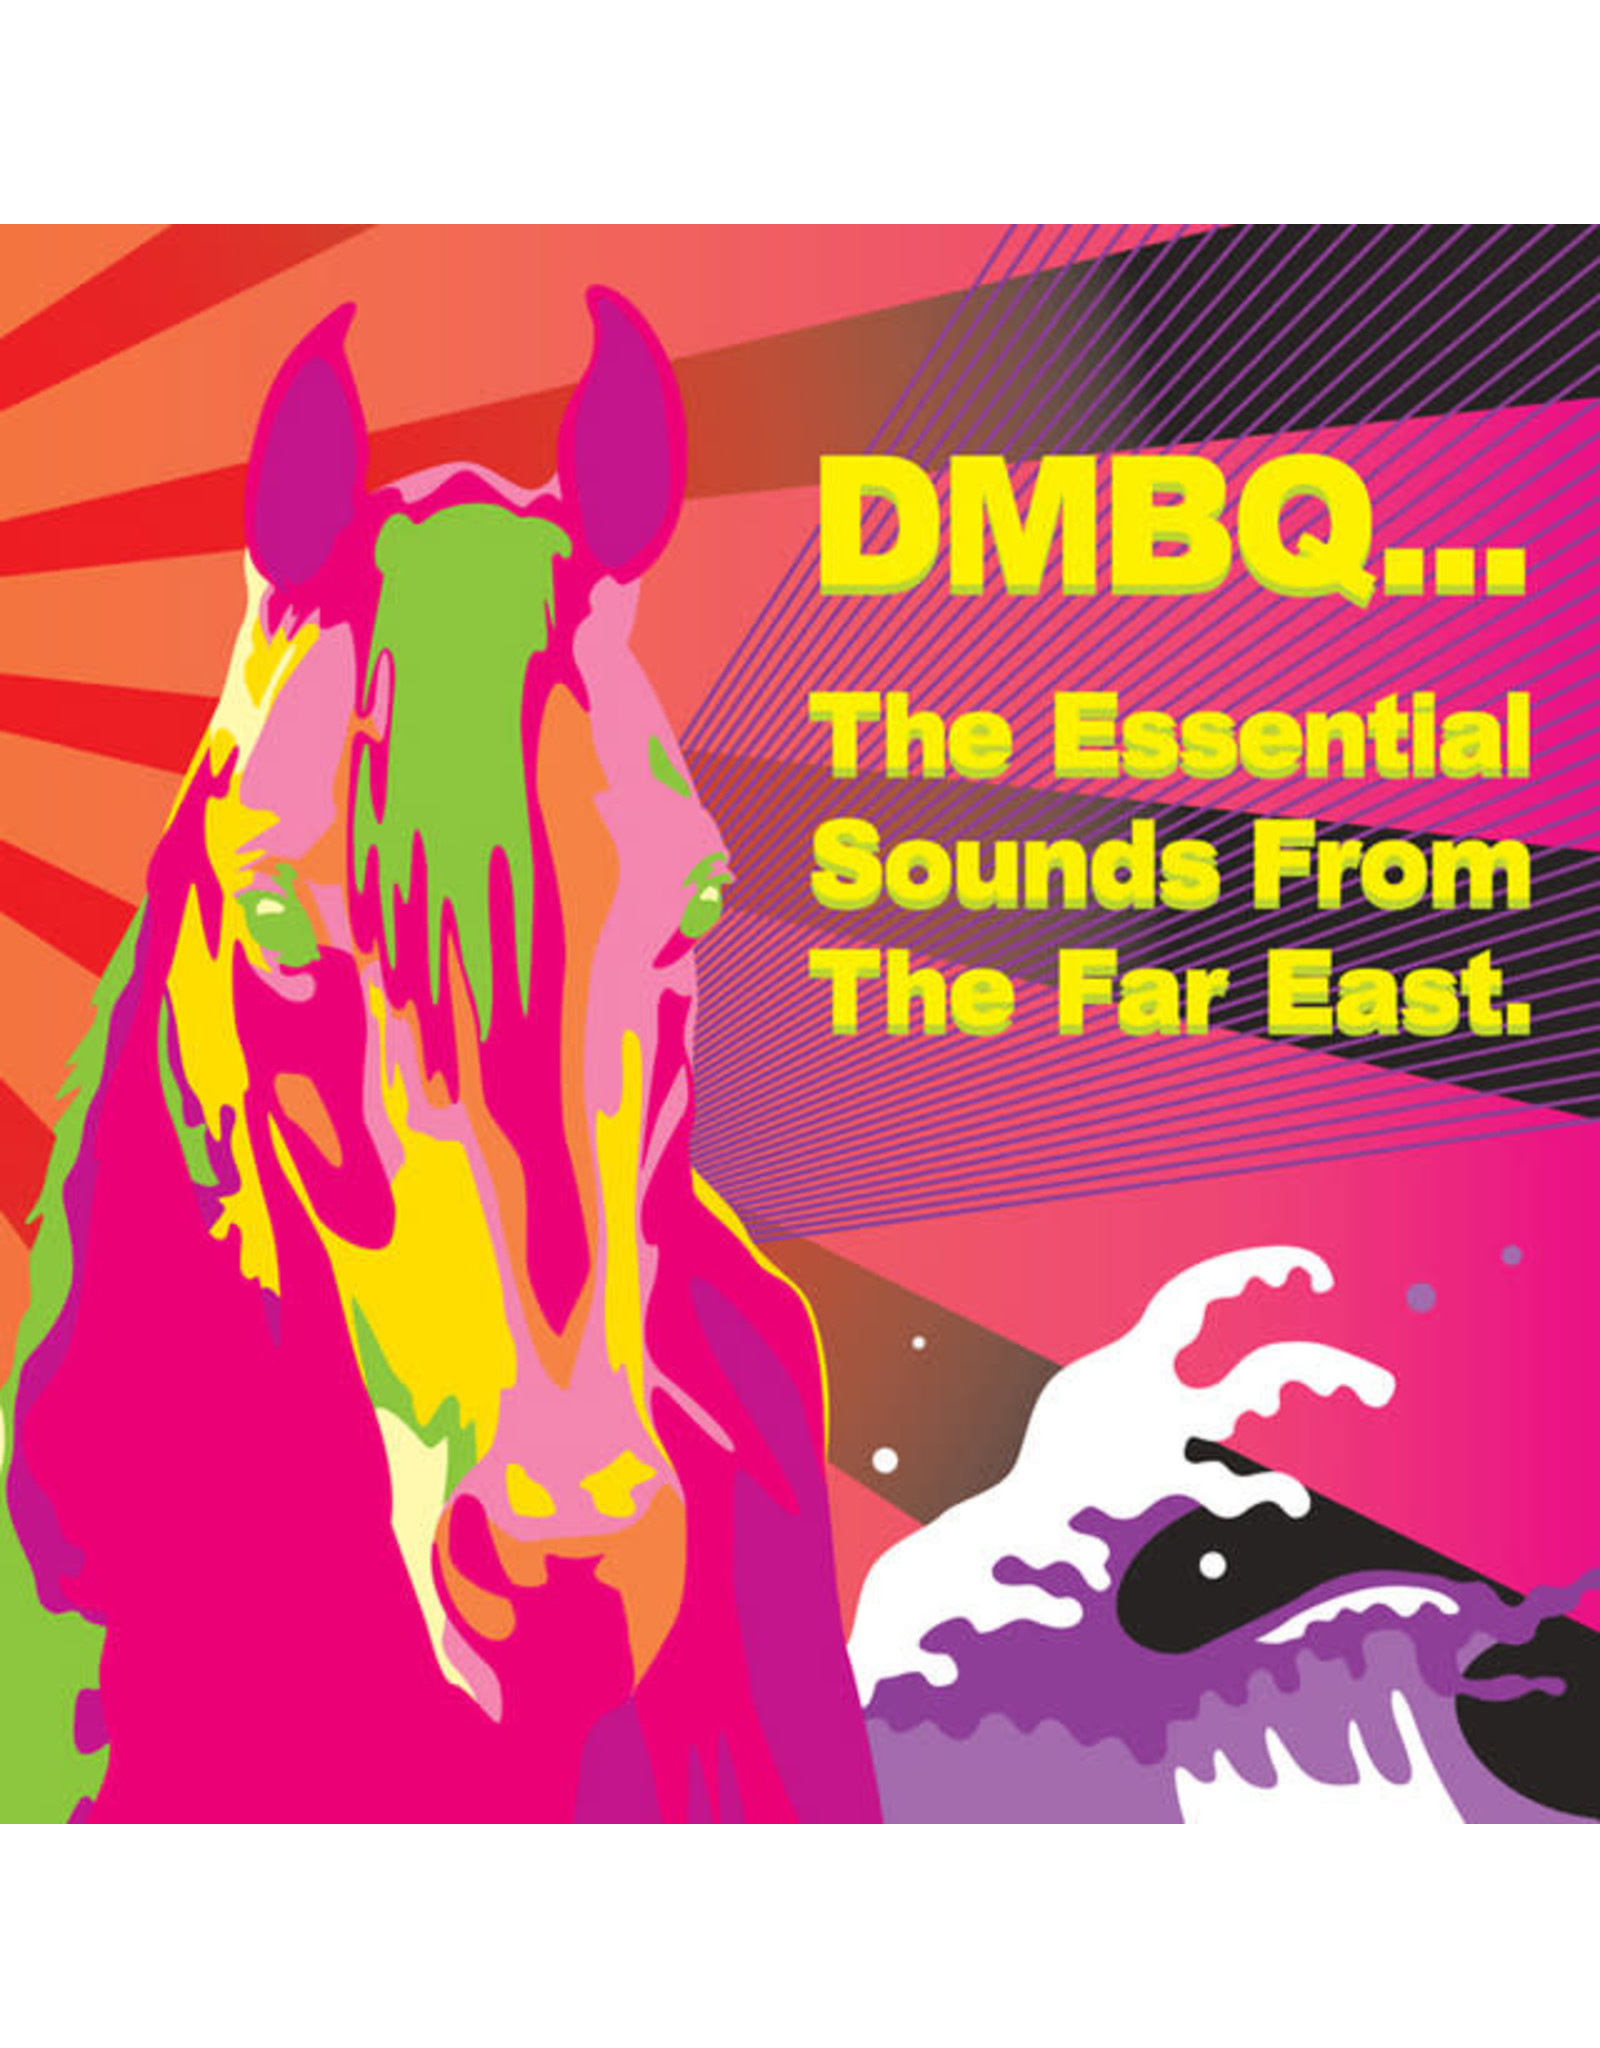 DMBQ - The Essential Sounds From the Far East CD